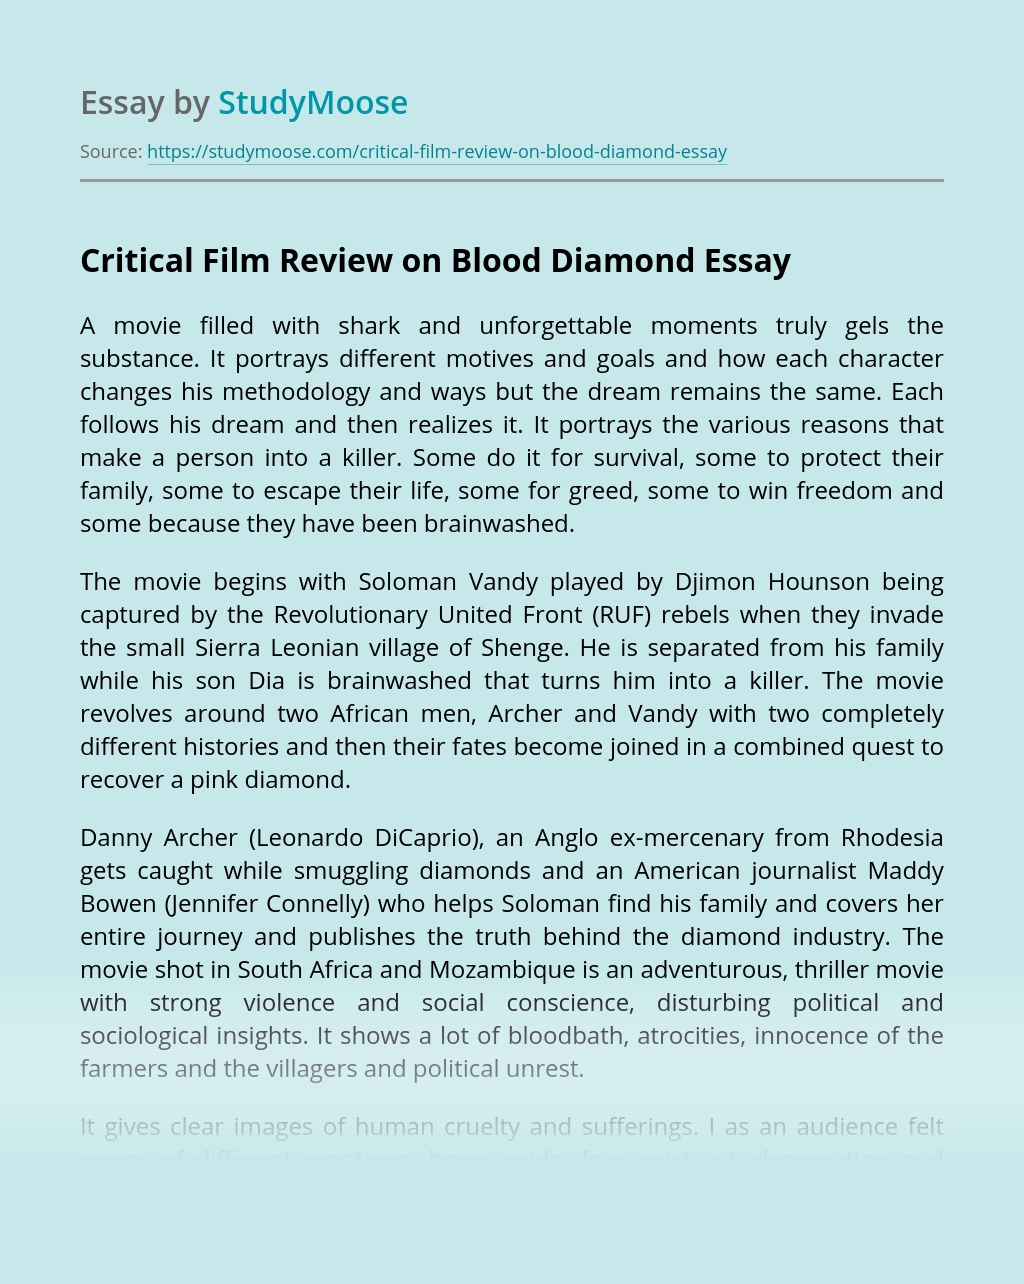 Critical Film Review on Blood Diamond